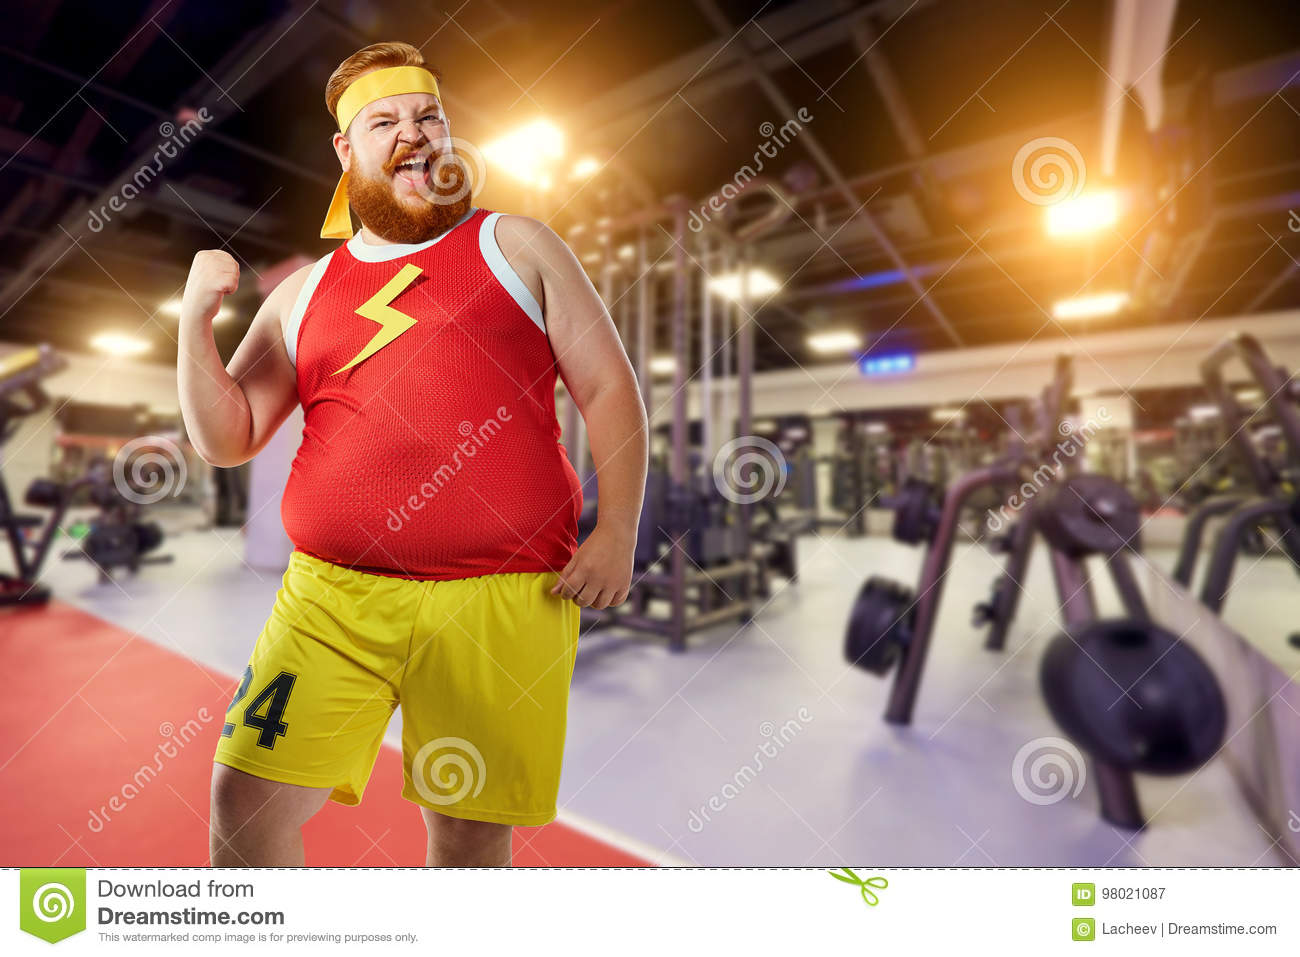 Fat funny man winner smiles in sports clothes in the gym.